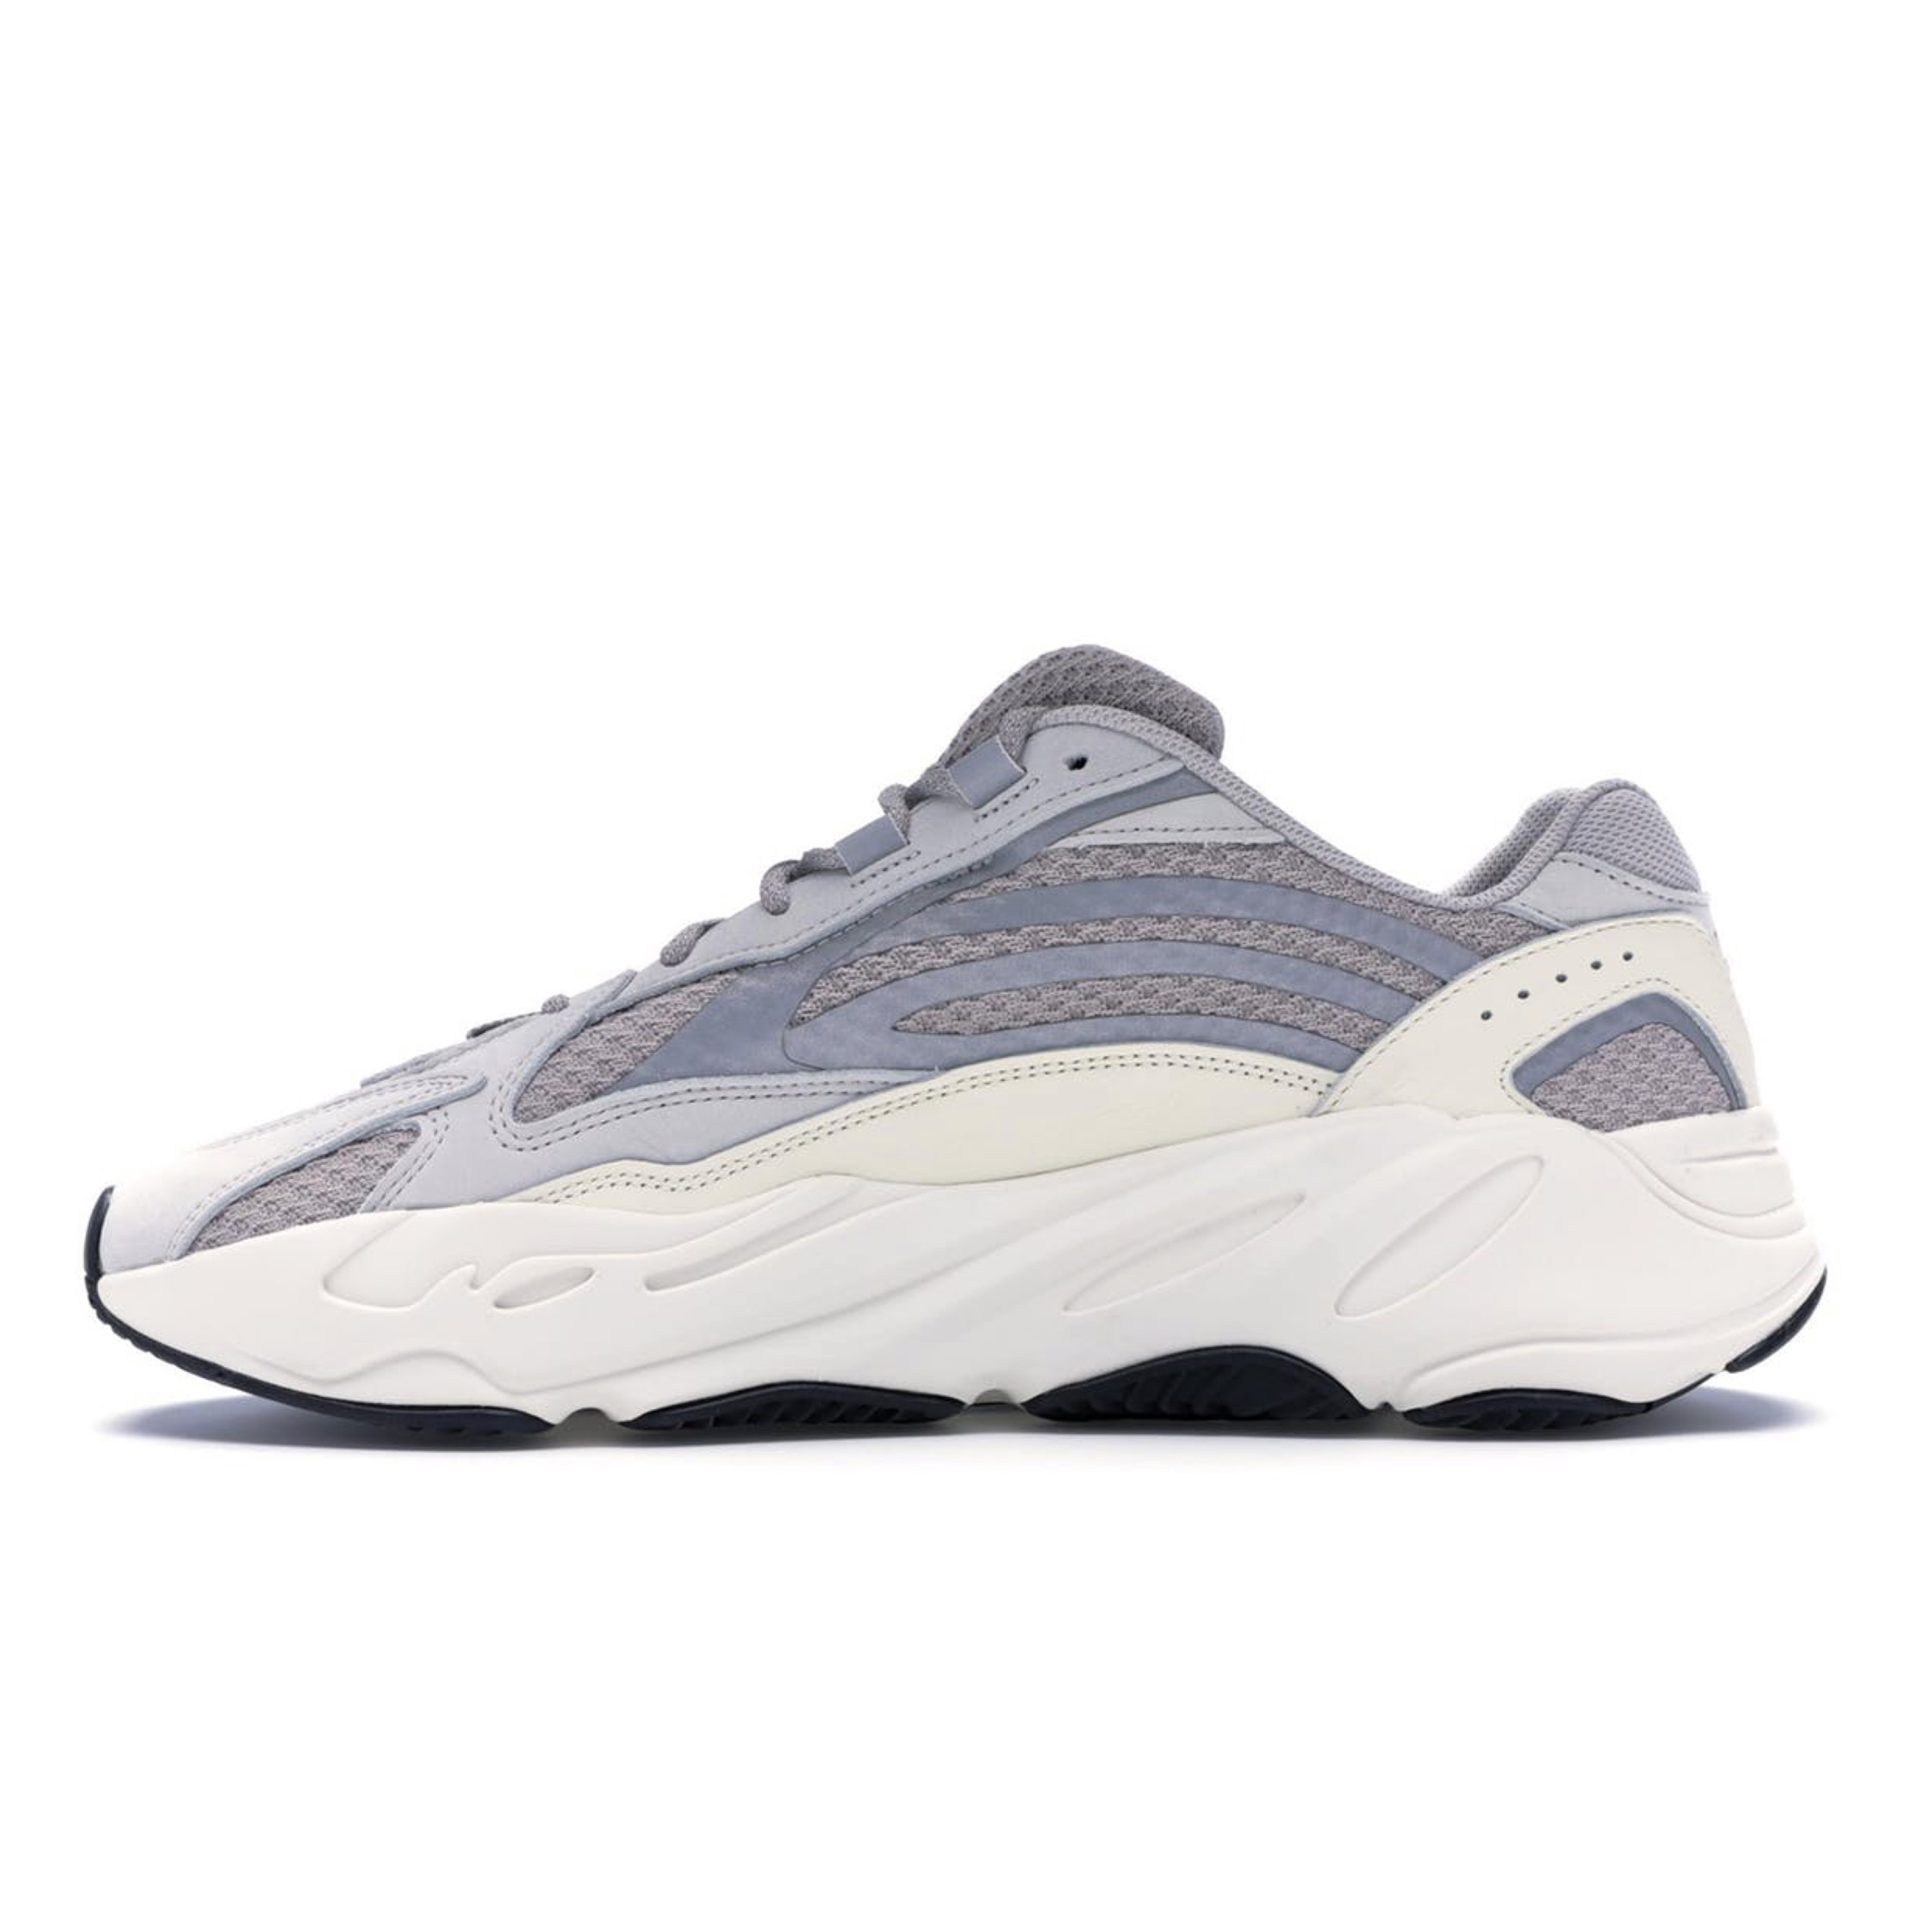 the best attitude 8d916 ae64d Adidas Yeezy Boost 700 Static V2